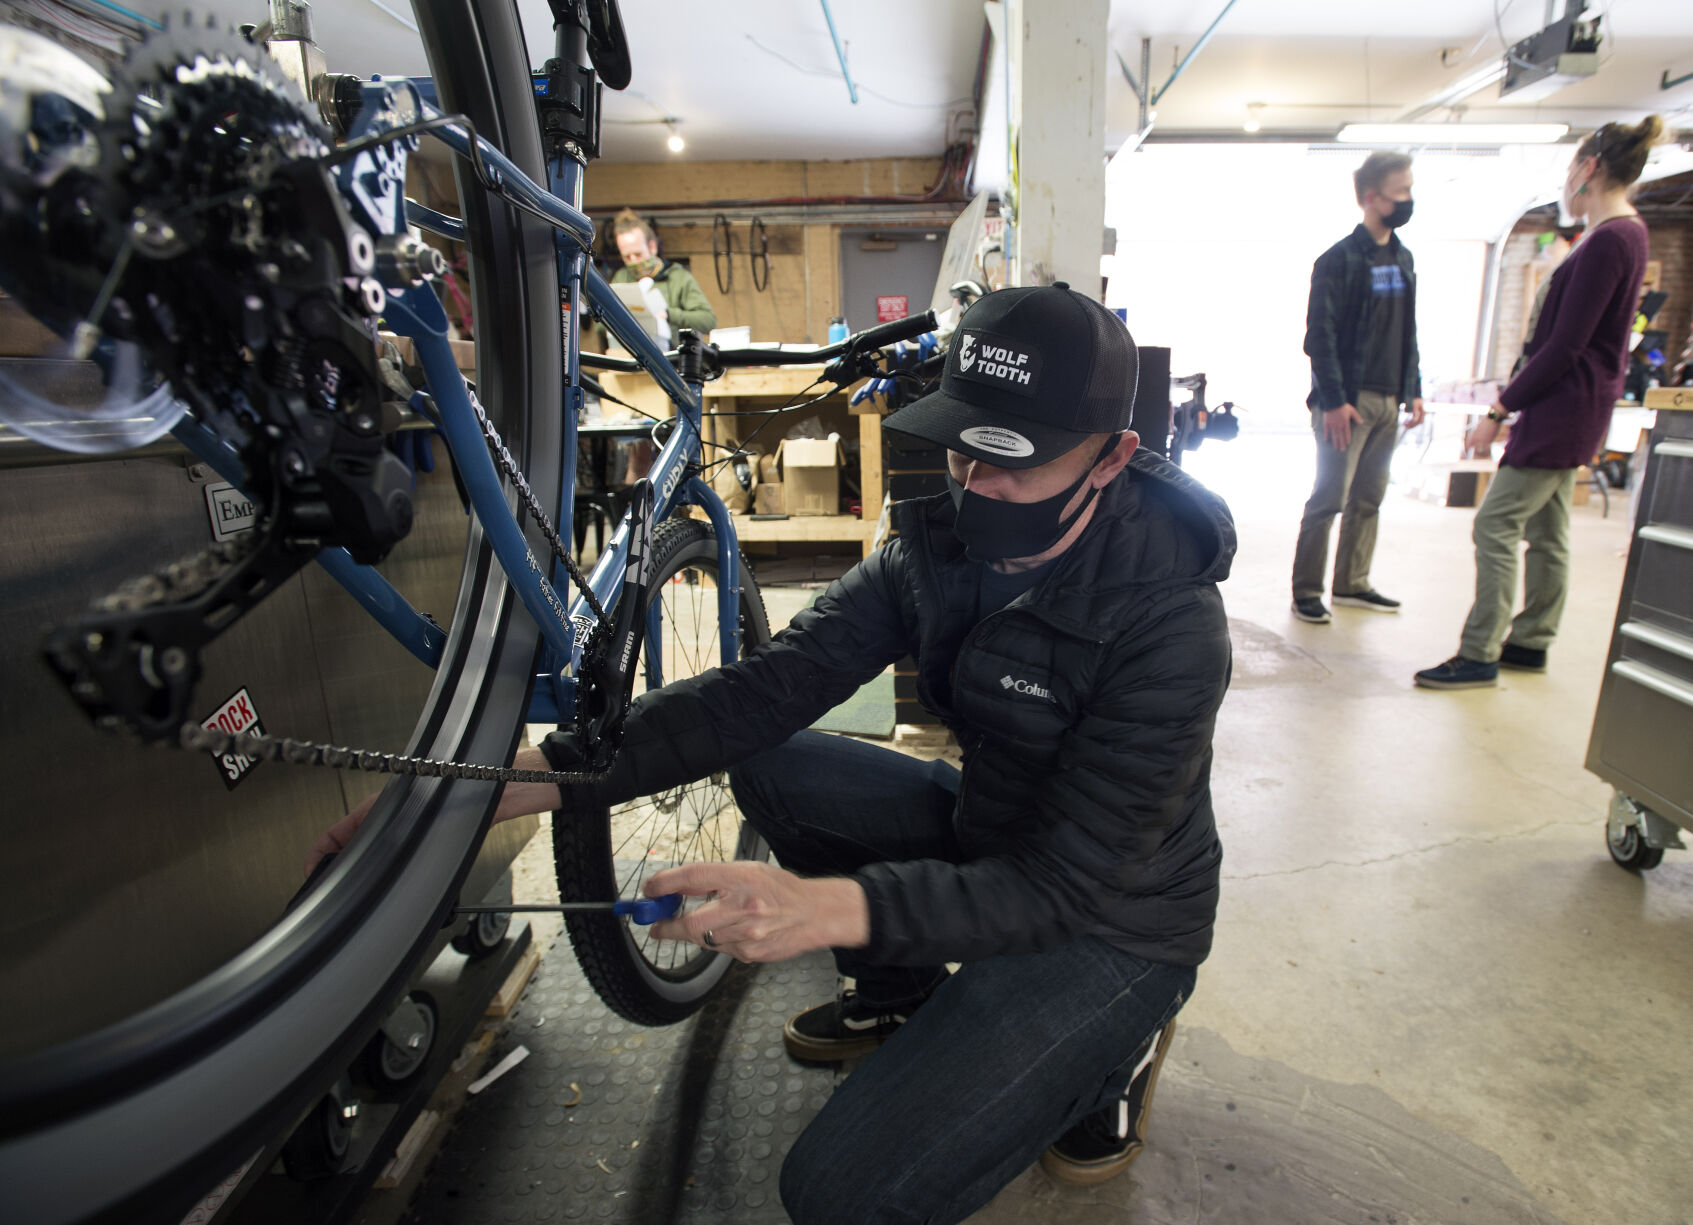 lancasteronline.com - CHAD UMBLE | Staff Writer - Pandemic-induced cycling boom drying up supply at local bike shops; 'Nobody has it